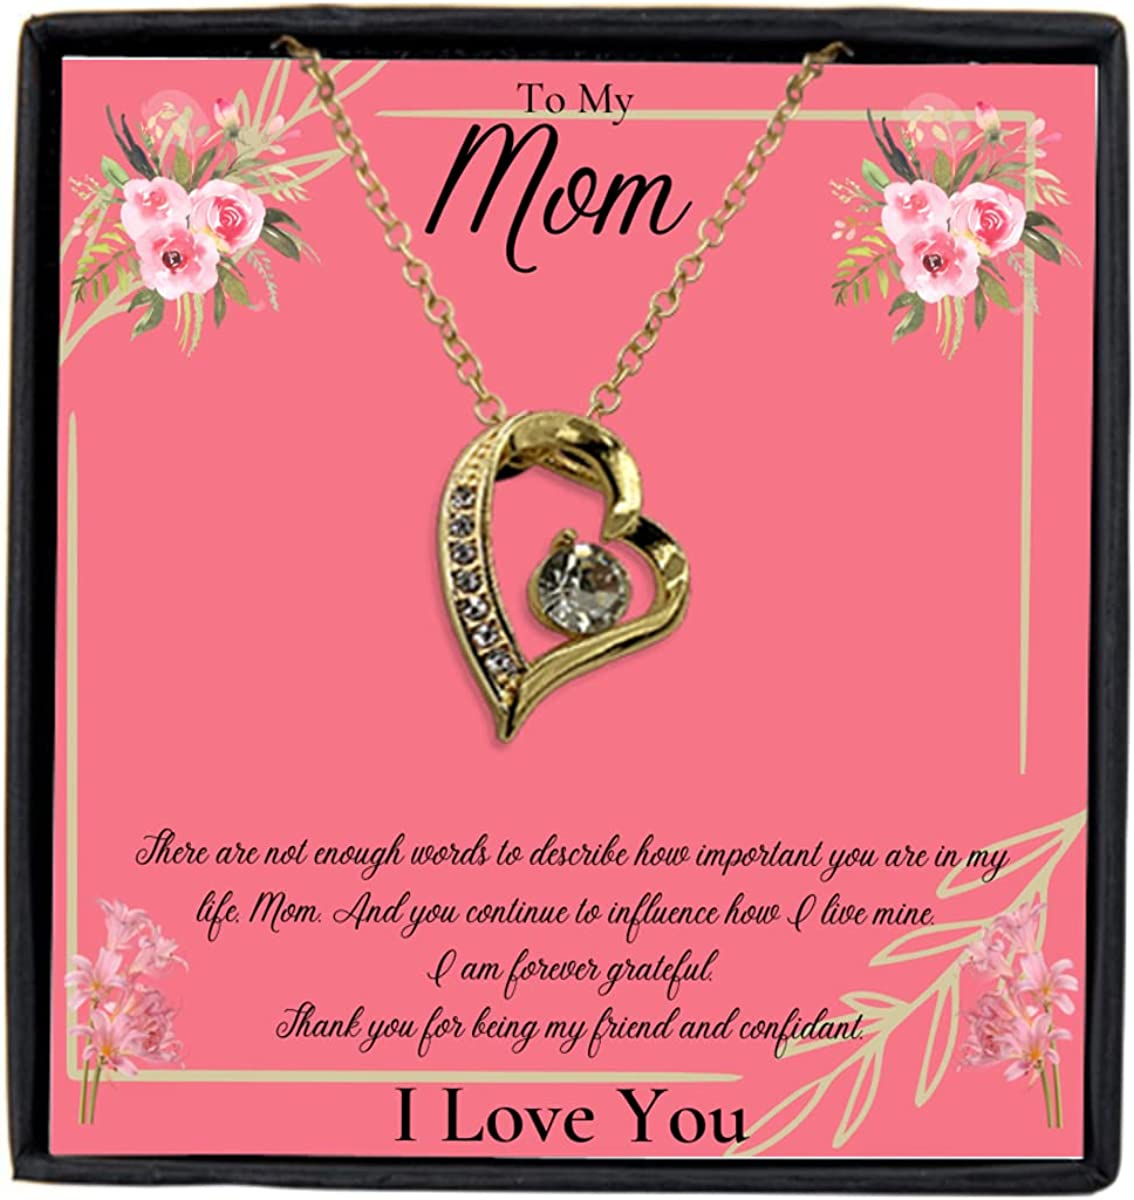 Forever Max 46% OFF Love Heart Necklace Gift Mom from Son fro to Max 76% OFF